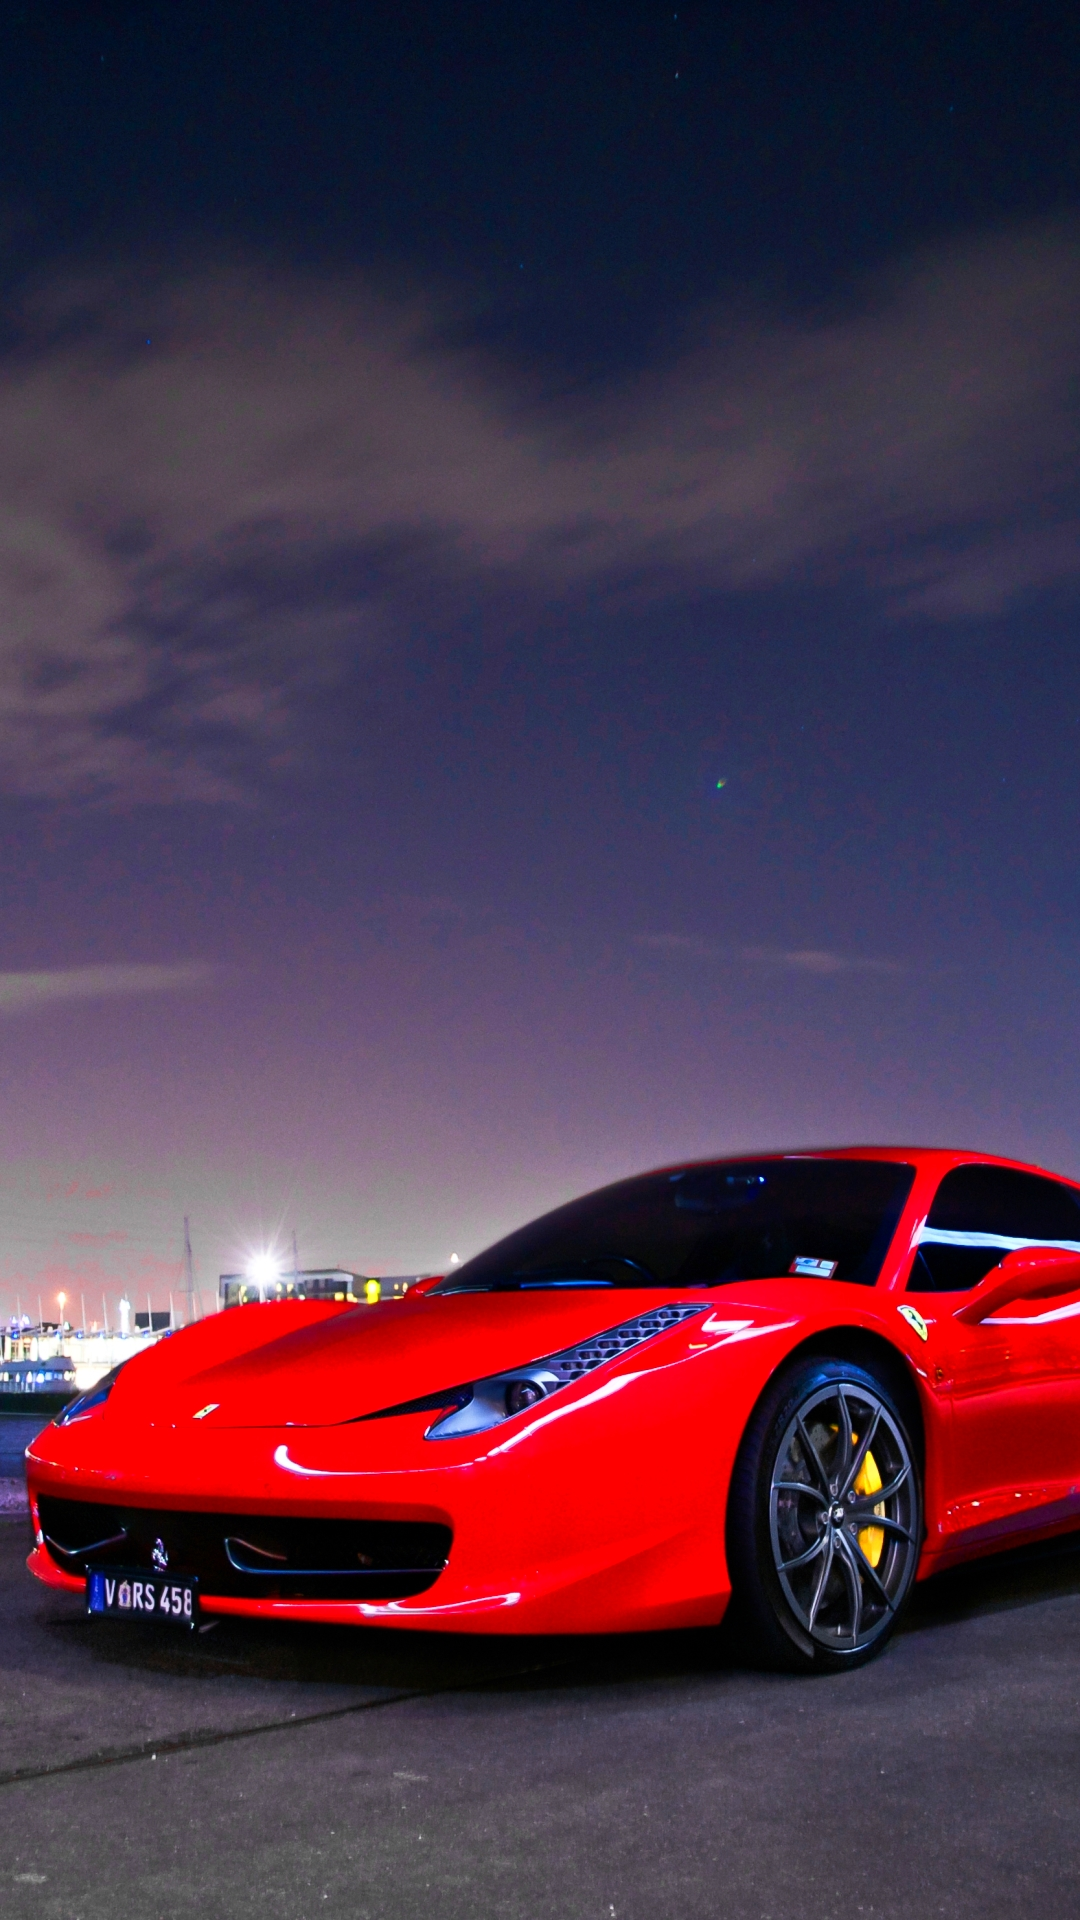 Airpods pro deal at amazon: Sport Car Wallpaper For Iphone 1080x1920 Wallpaper Teahub Io